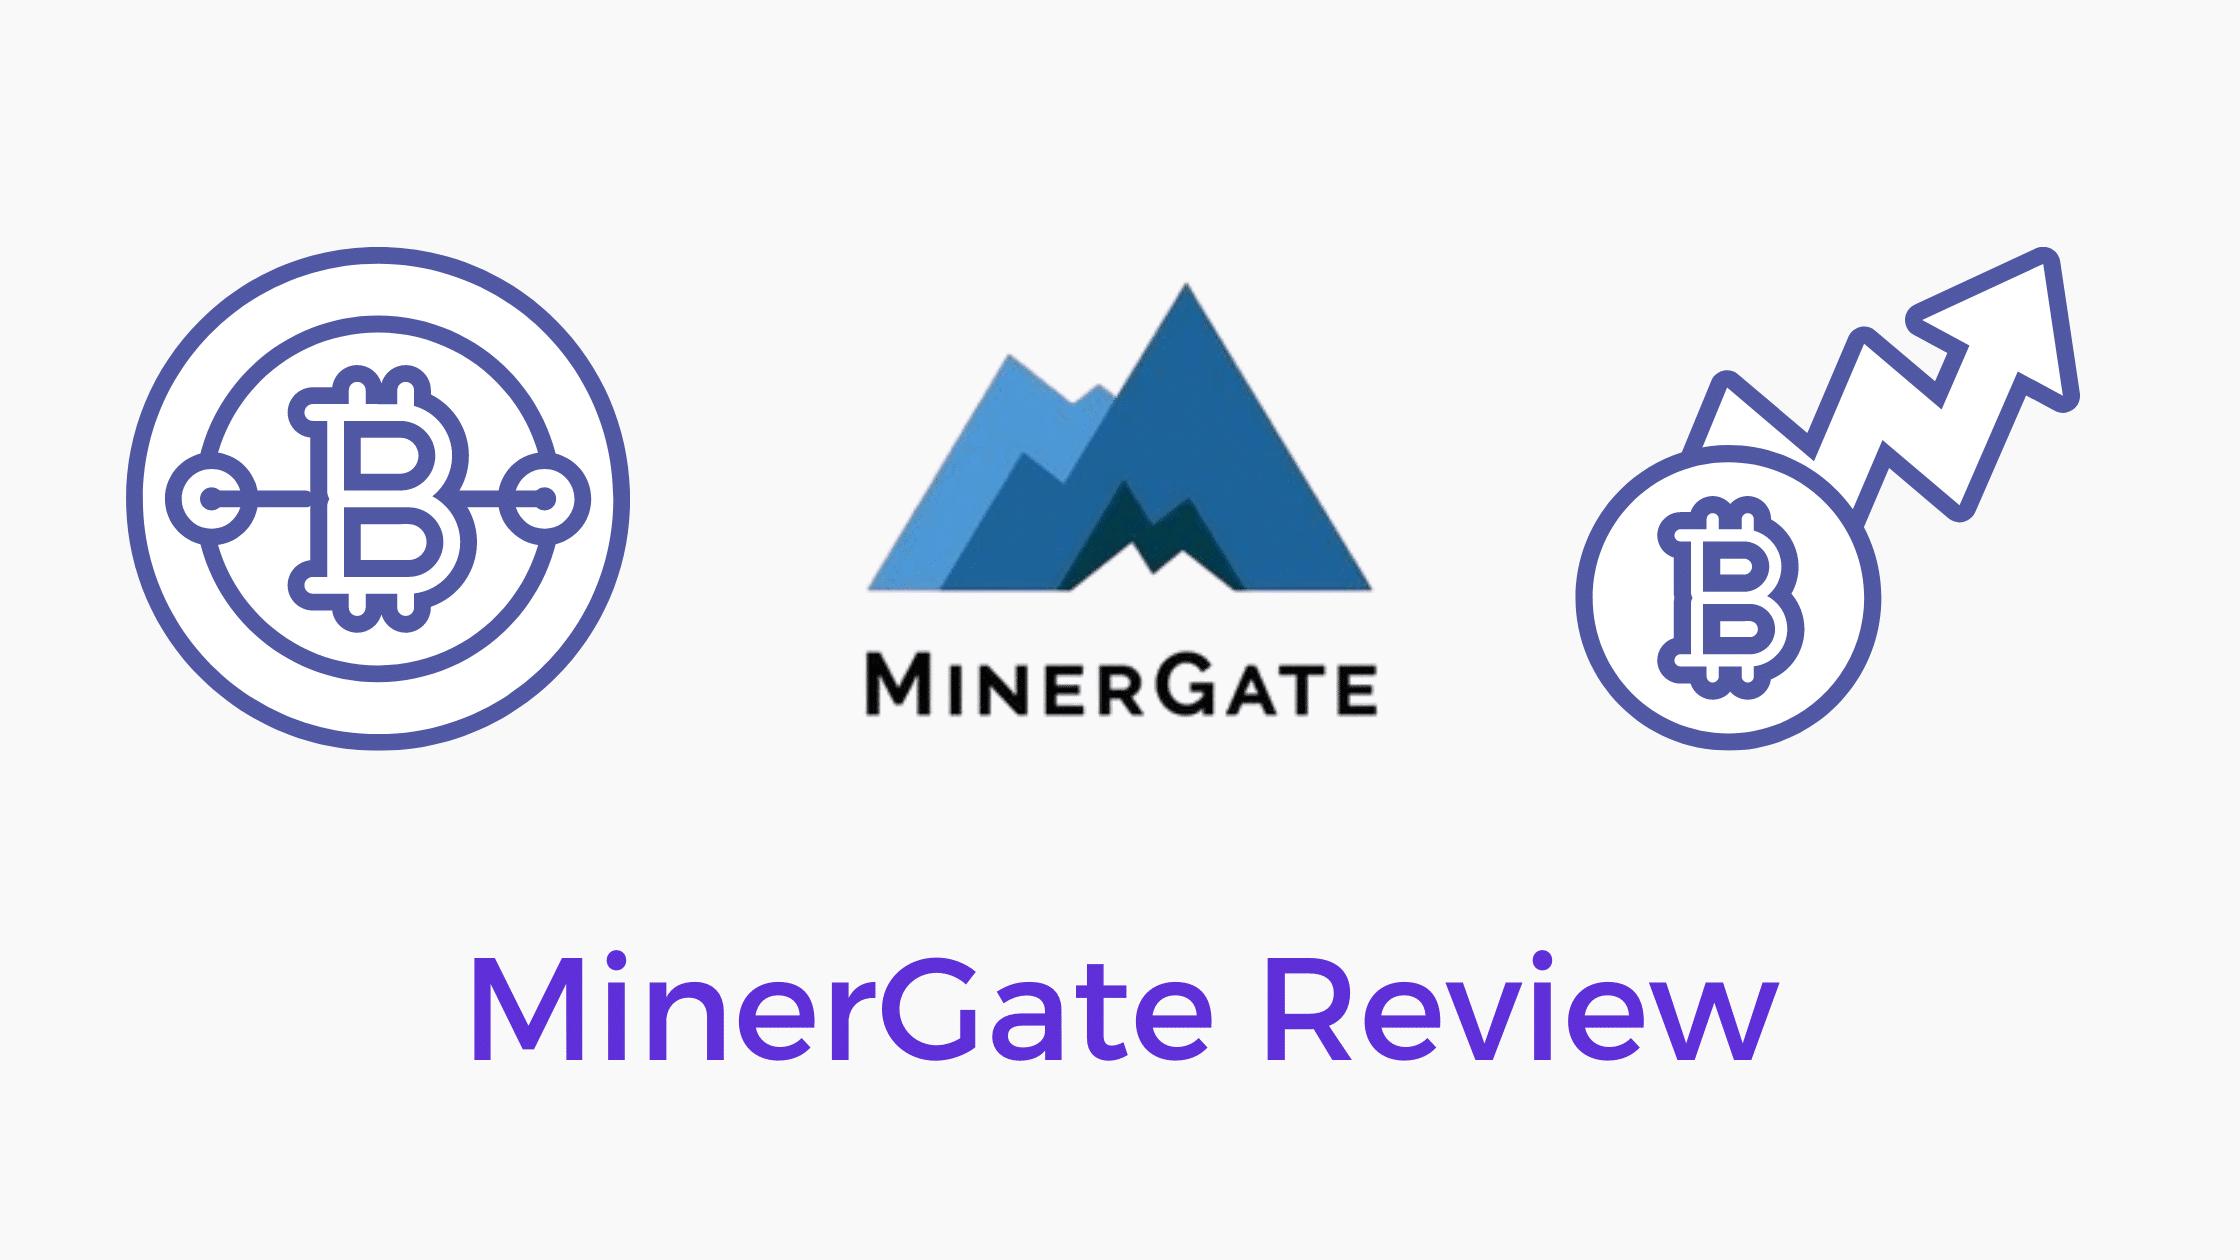 minergate review traffic